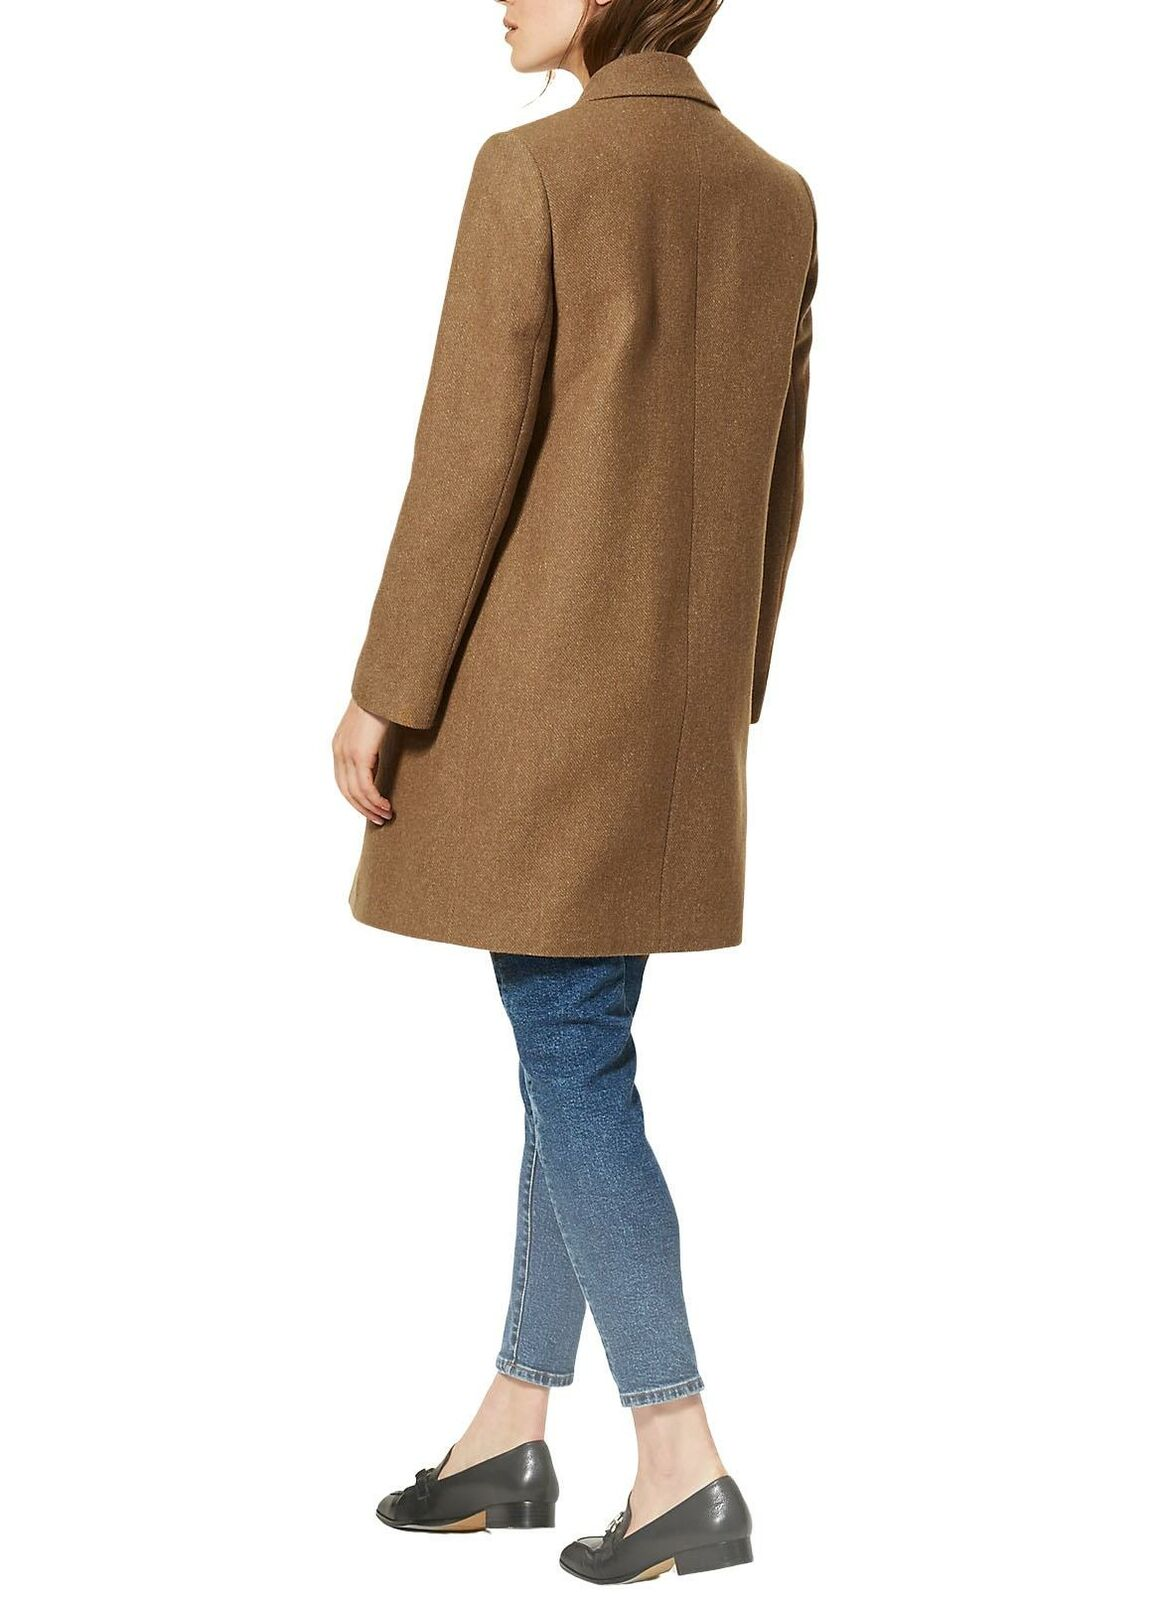 M-amp-S-Wool-Blend-Single-Breasted-Pink-Brown-Winter-Coat-Holly-Willoughby-Size-6-24 thumbnail 22